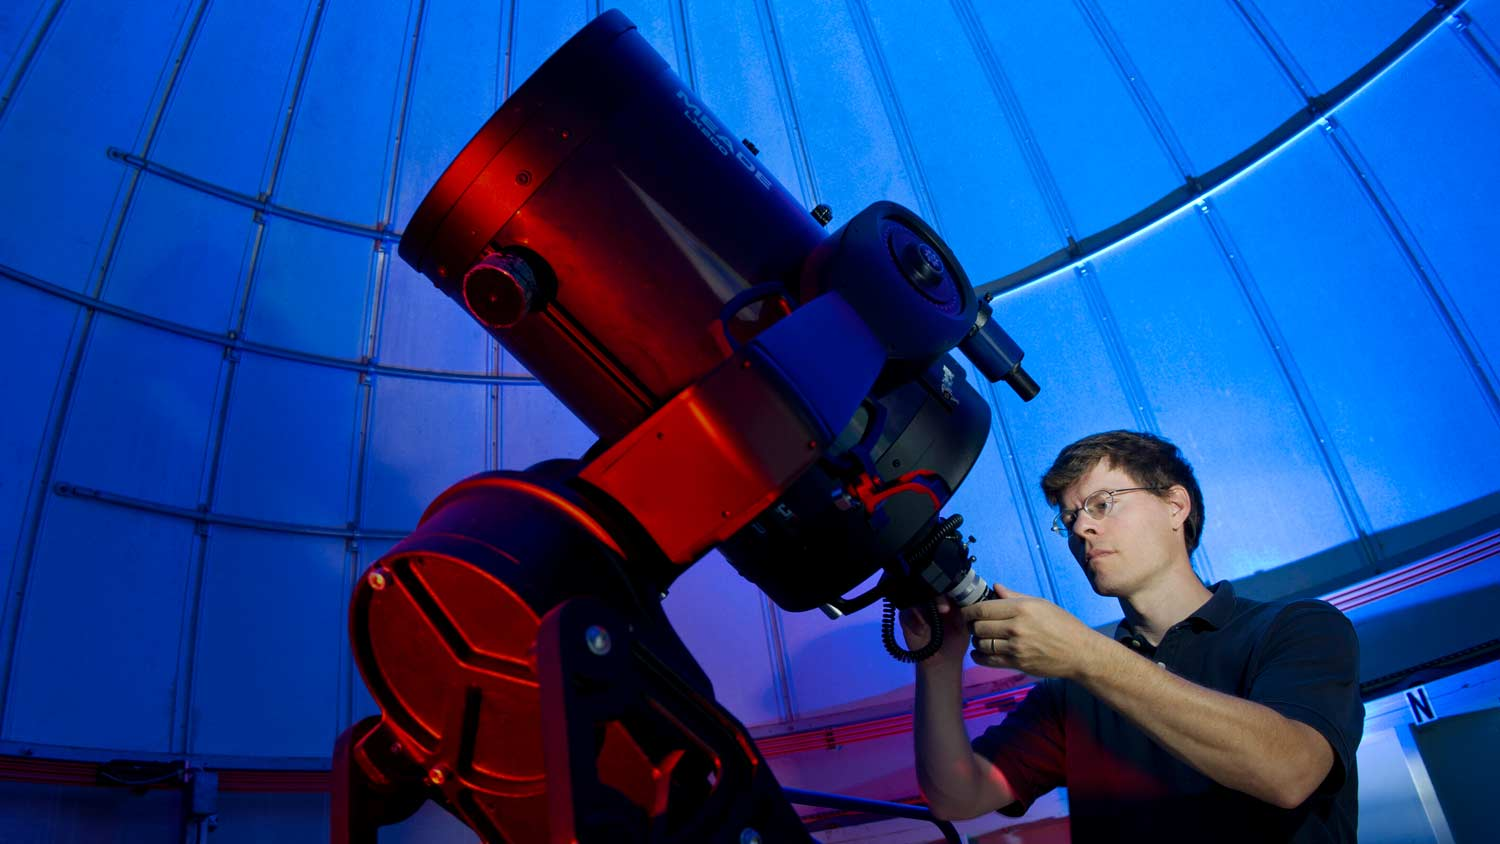 Person calibrating a telescope